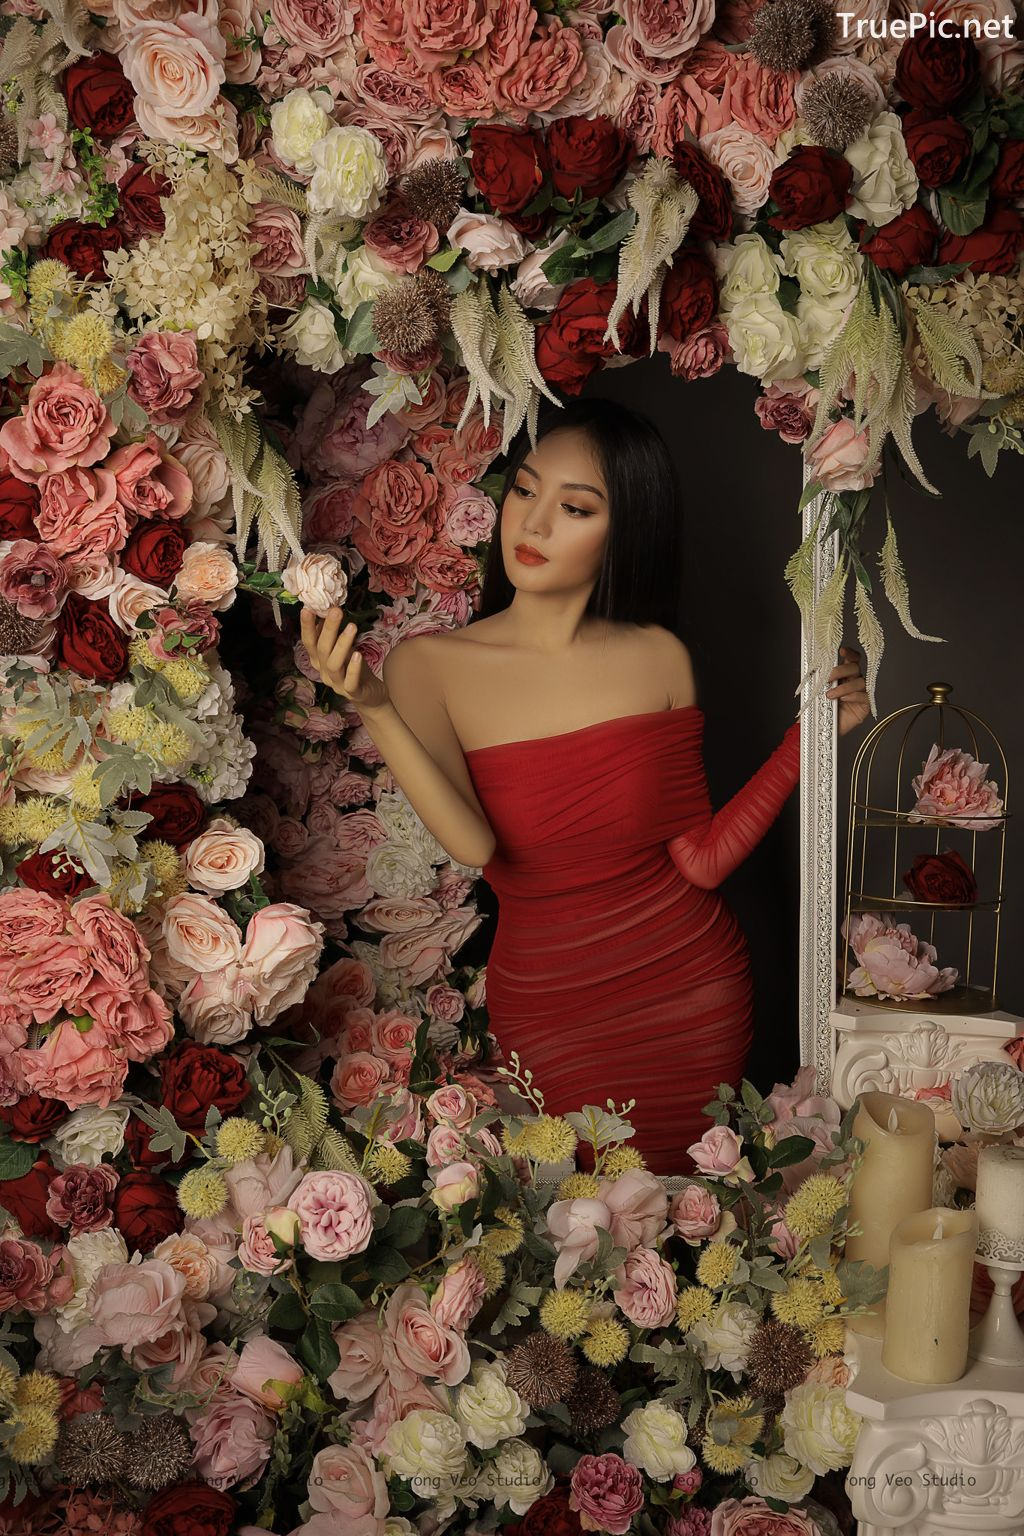 Image Vietnamese Model - Beautiful Girl and Flowers - TruePic.net - Picture-10